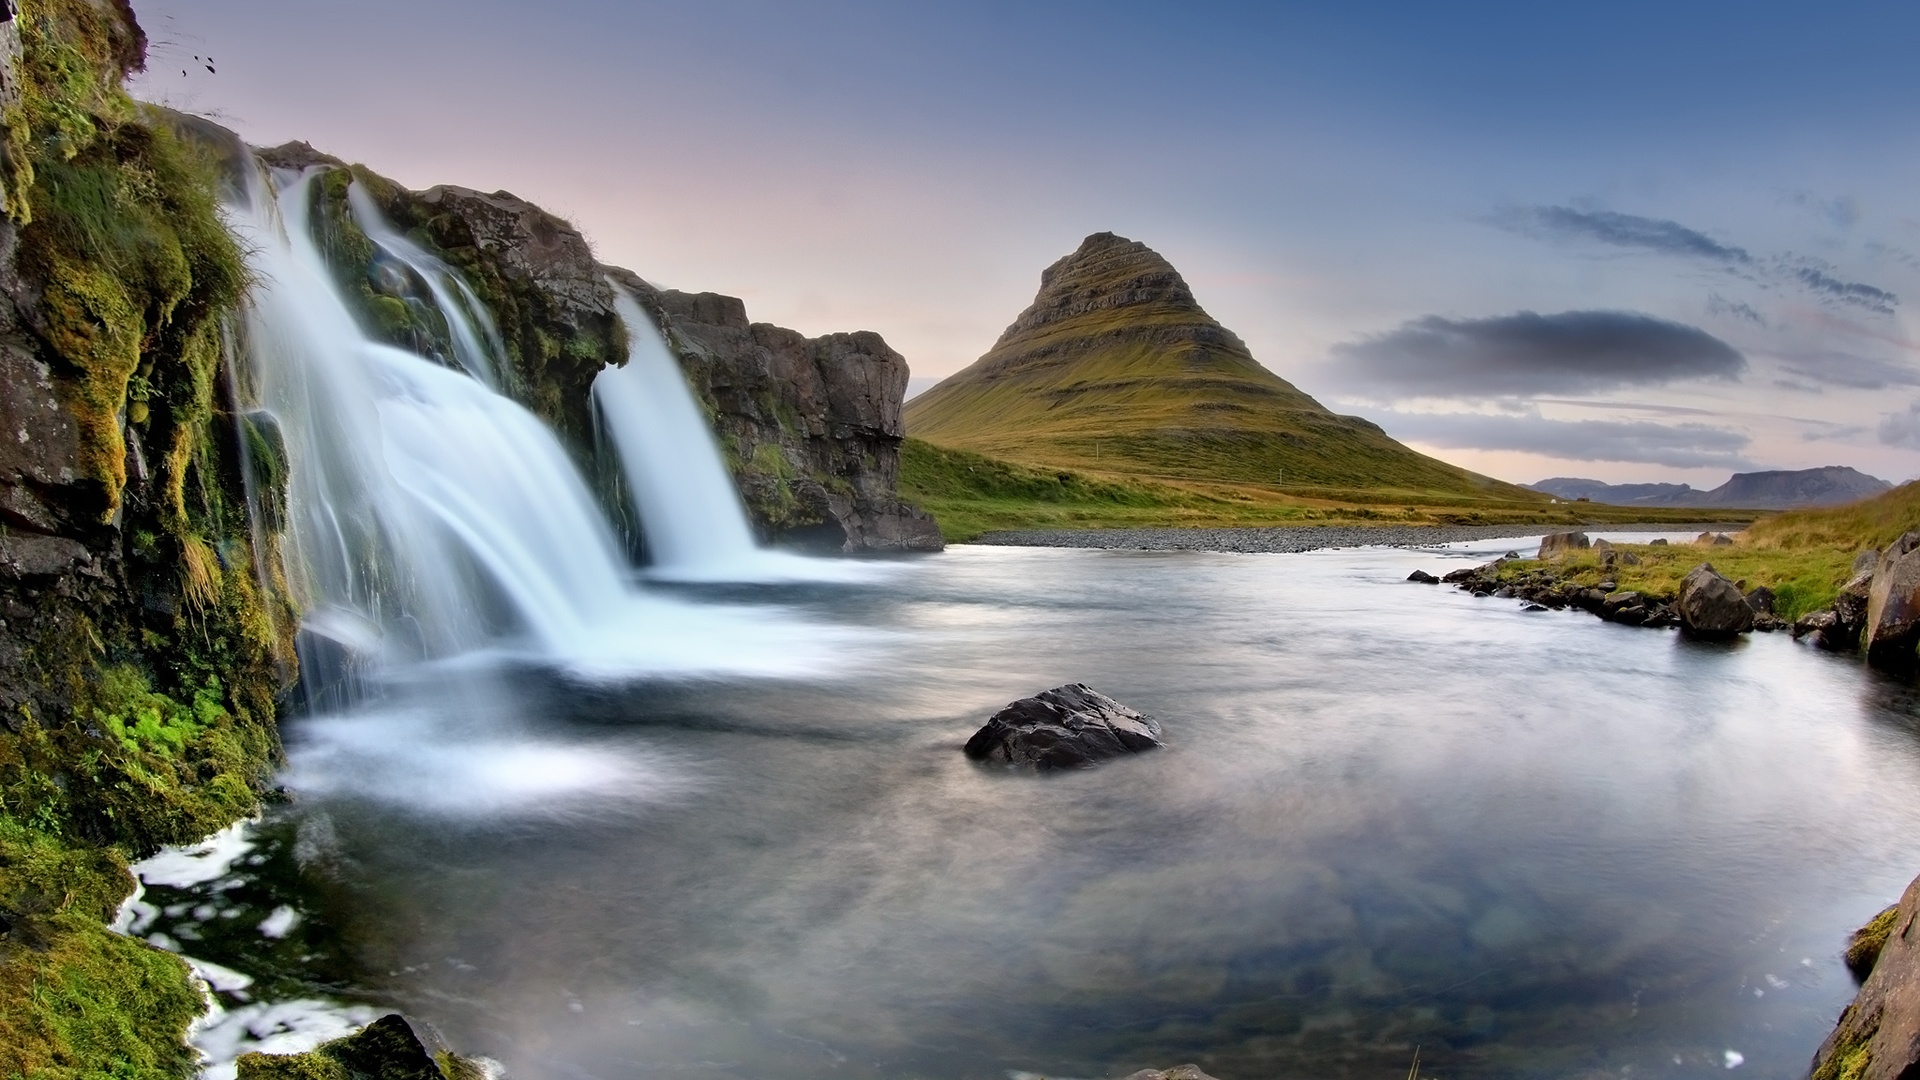 Iceland Eldfell The Volcano Waterfall   High Definition Wallpapers 1920x1080